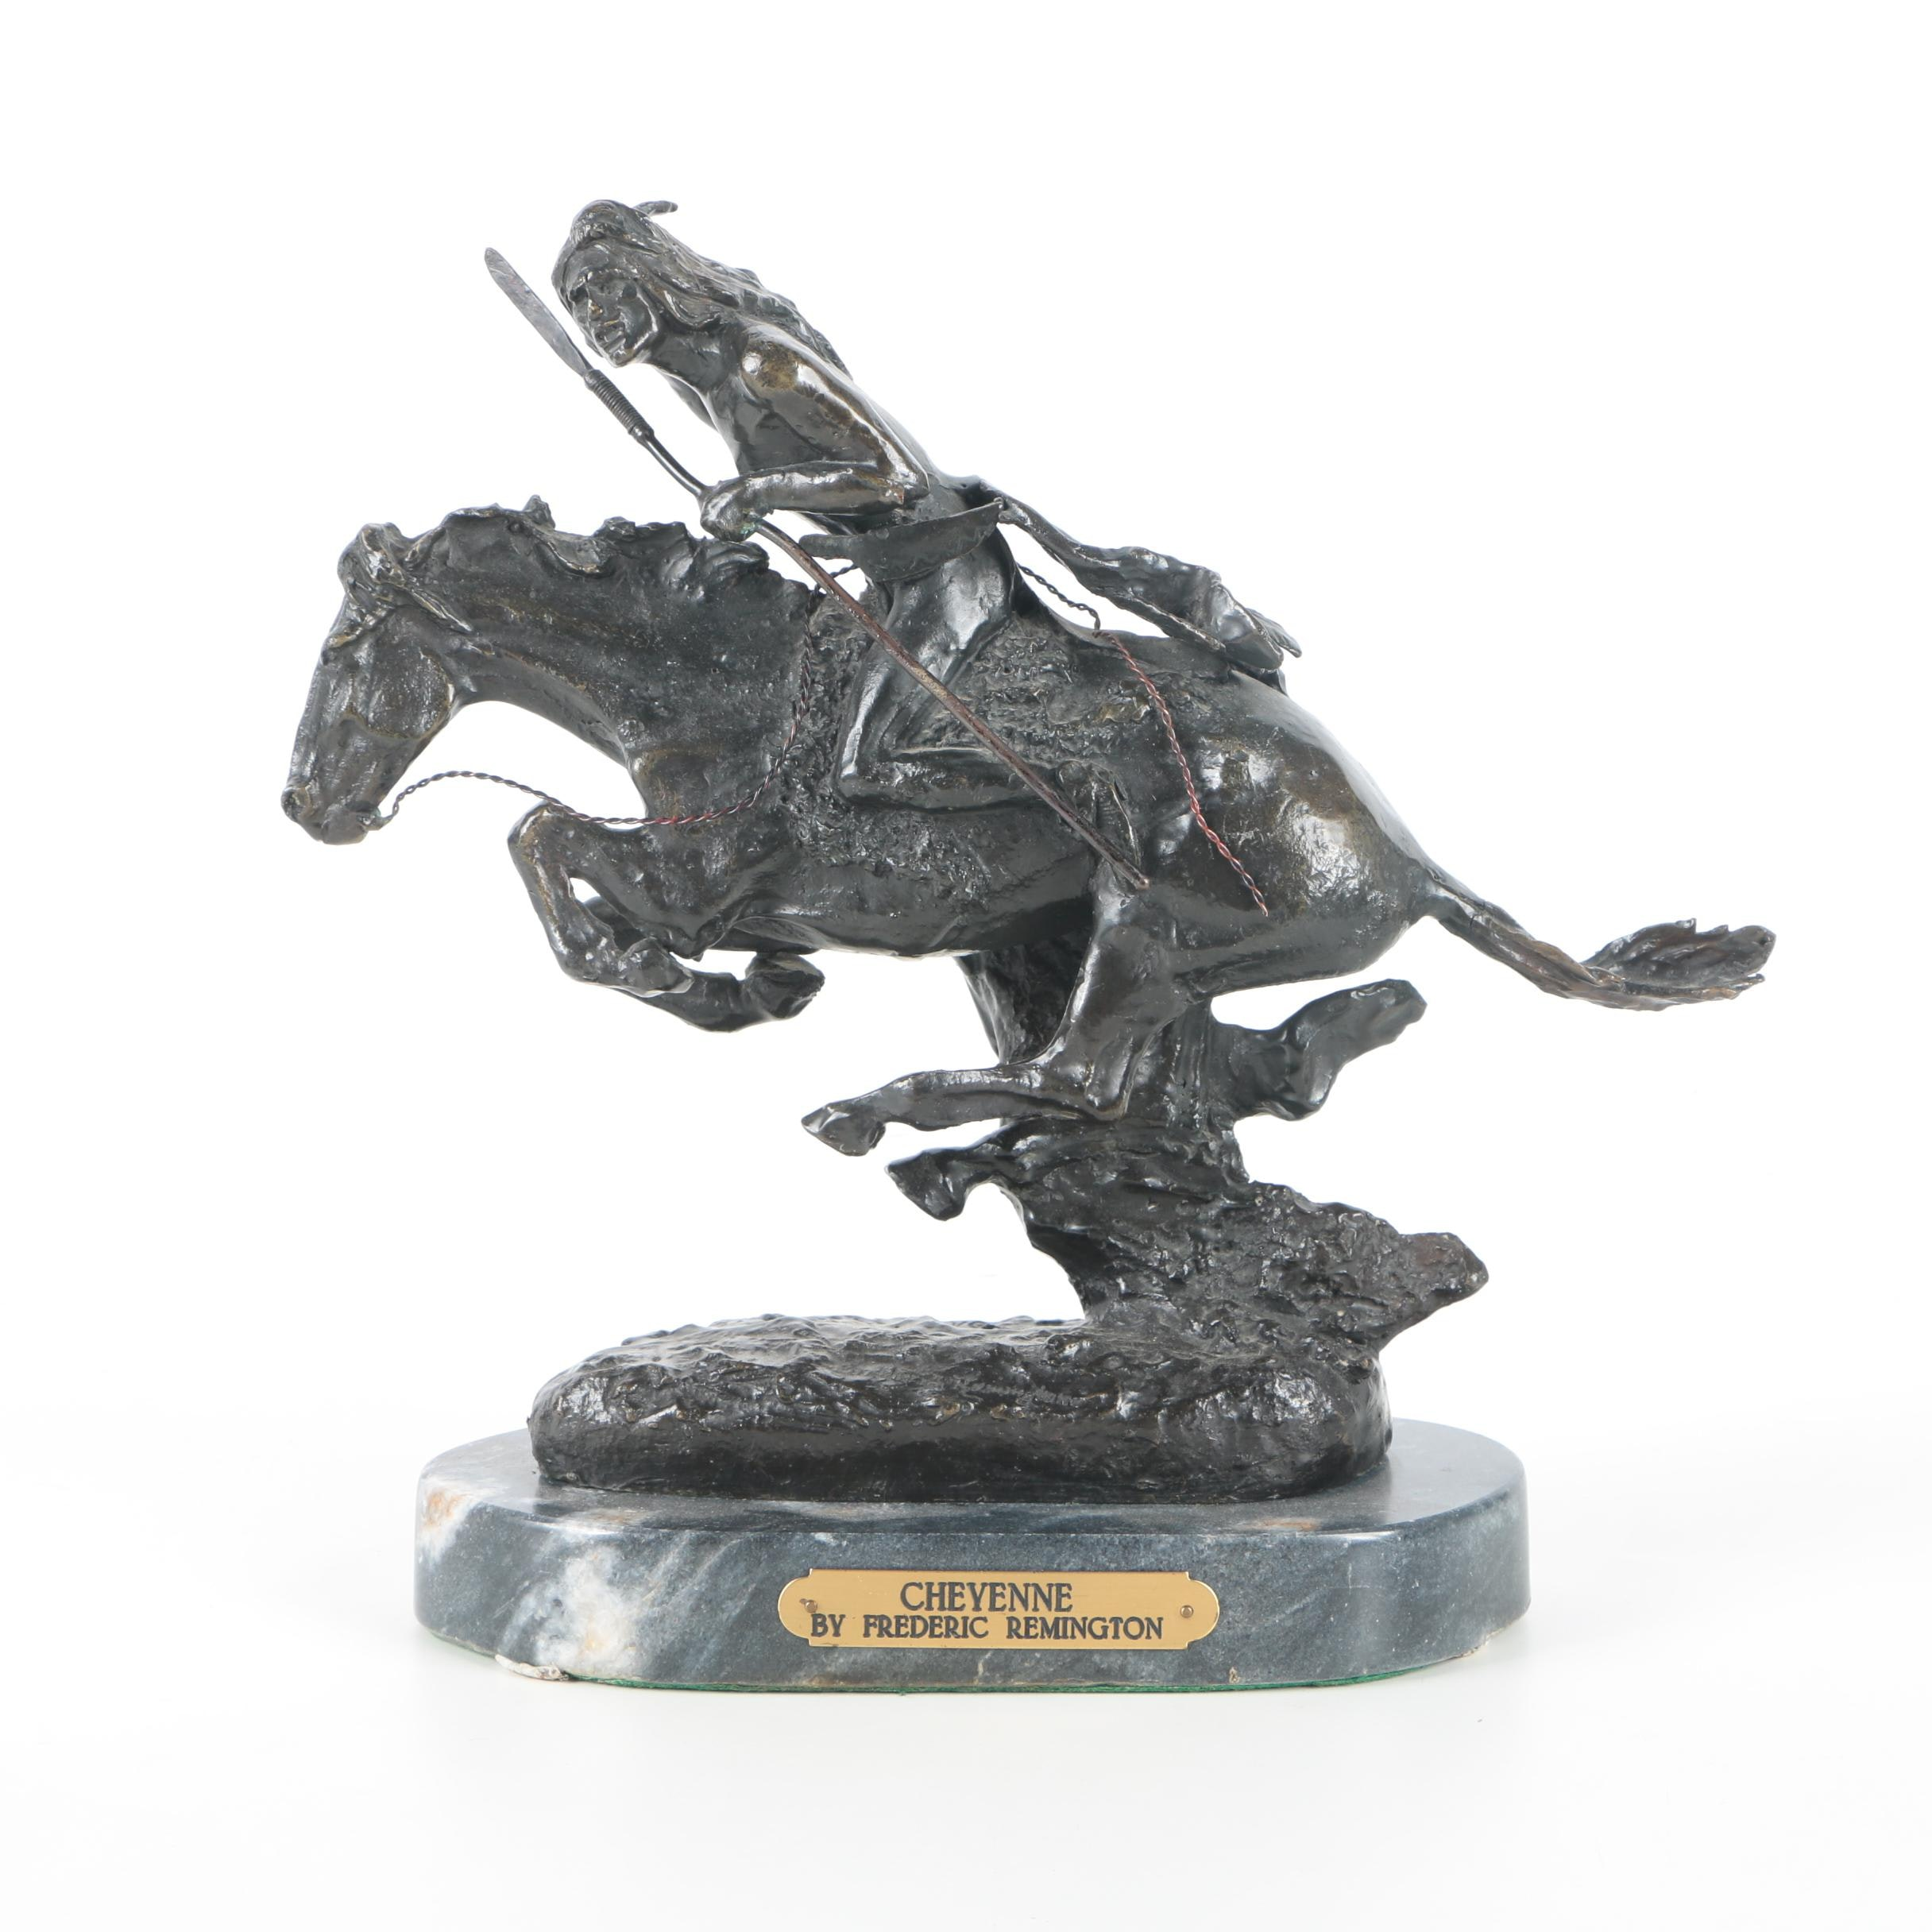 "Reproduction Copper Alloy Statue After Frederic Remington ""Cheyenne"""